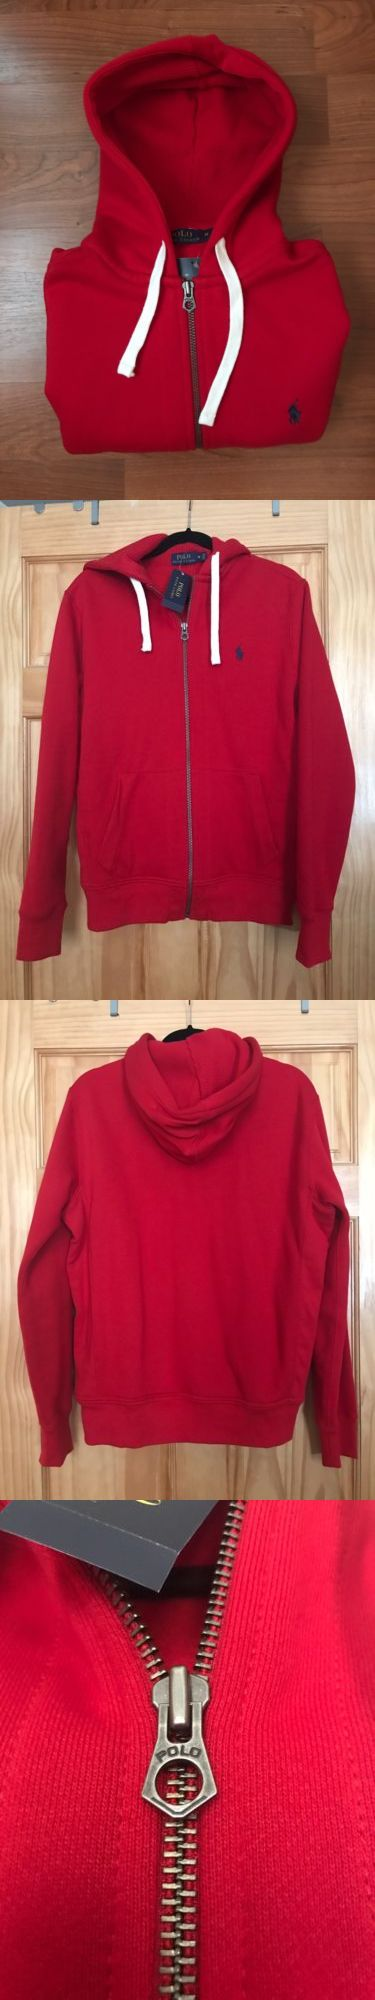 Sweats and Hoodies 155183: Nwt Polo Ralph Lauren Hoodie Men S Medium Red Zip Up Sweatshirt New -> BUY IT NOW ONLY: $59.95 on eBay!